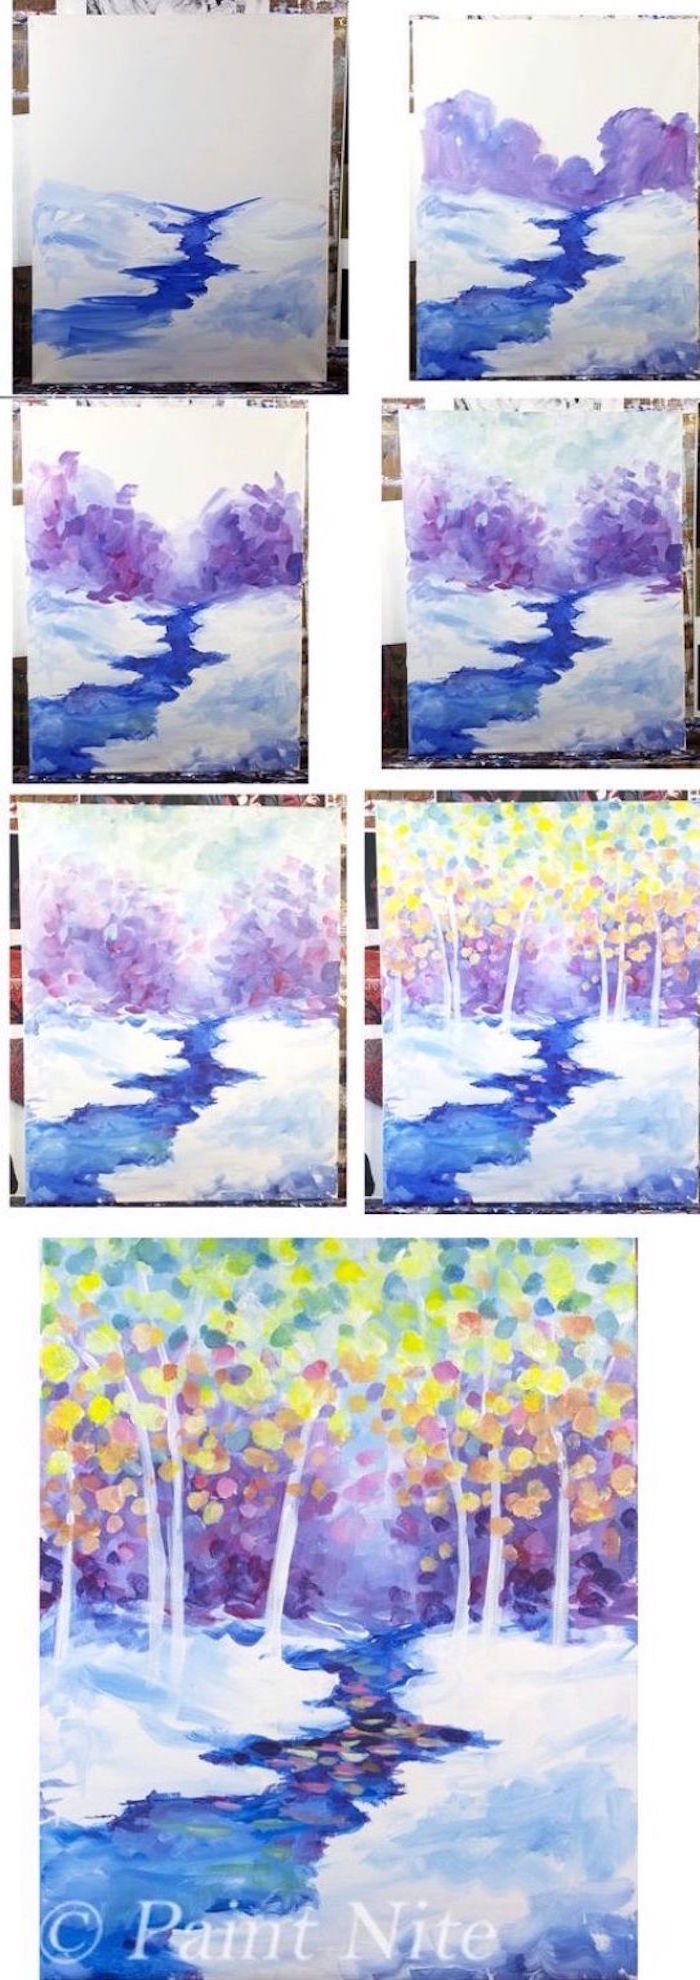 step by step diy tutorial, beginner easy painting ideas, river flowing through snowy field, tall trees in the background